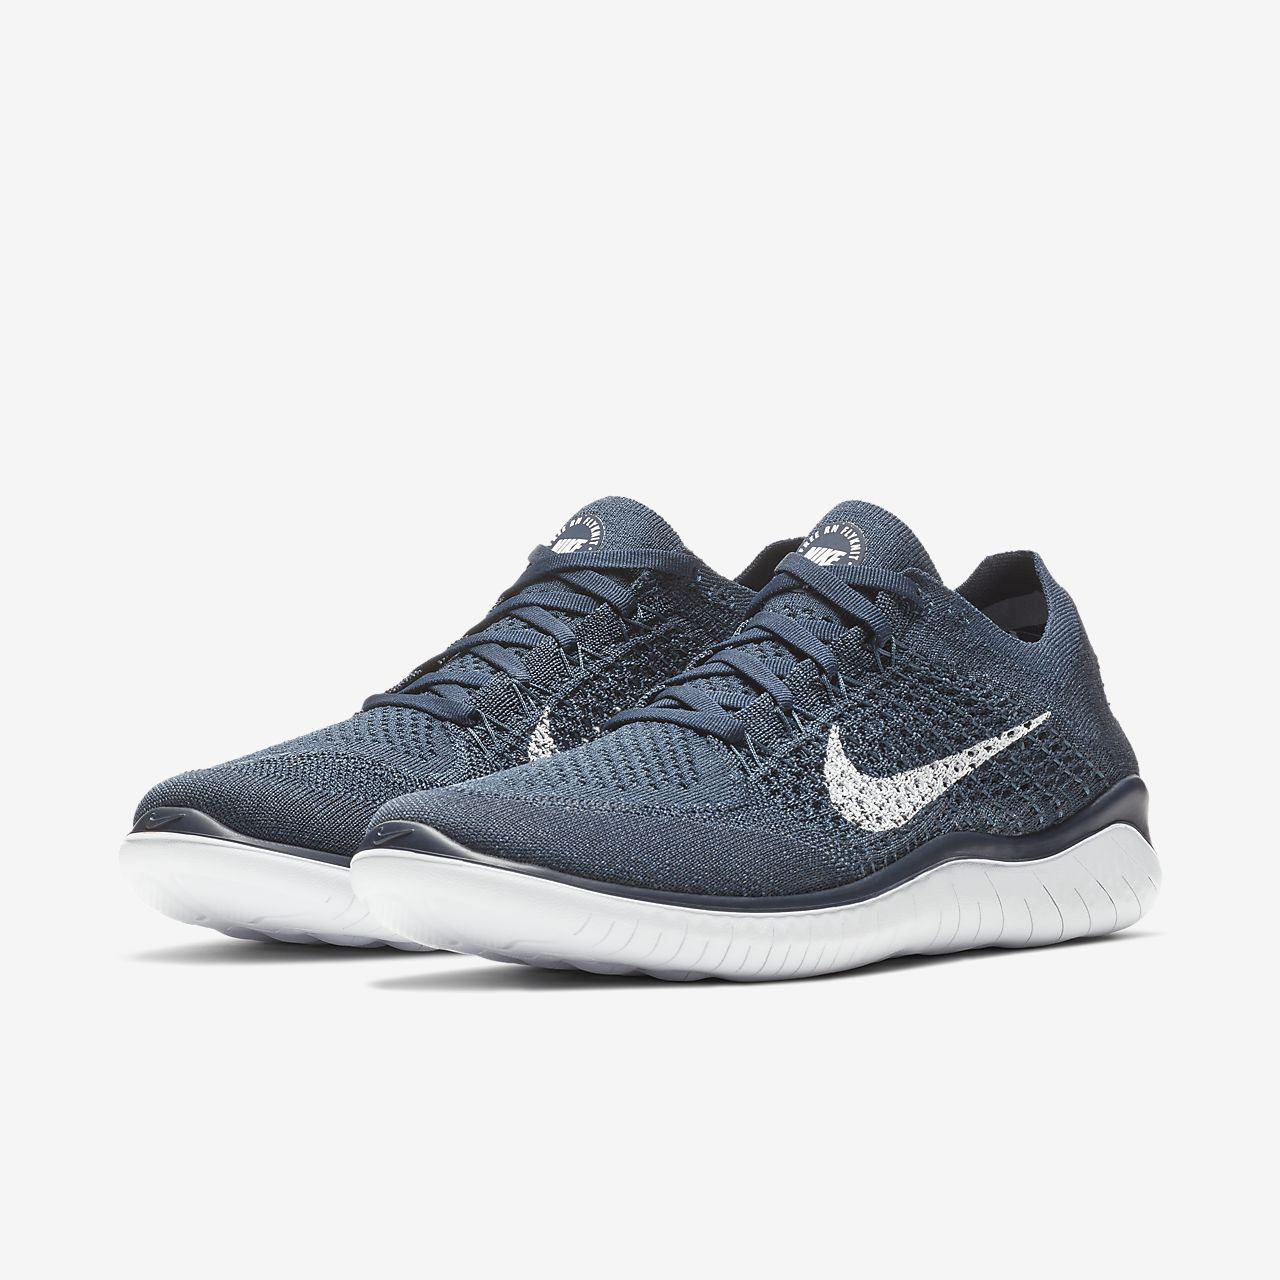 ... Nike Free RN Flyknit 2018 Men's Running Shoe